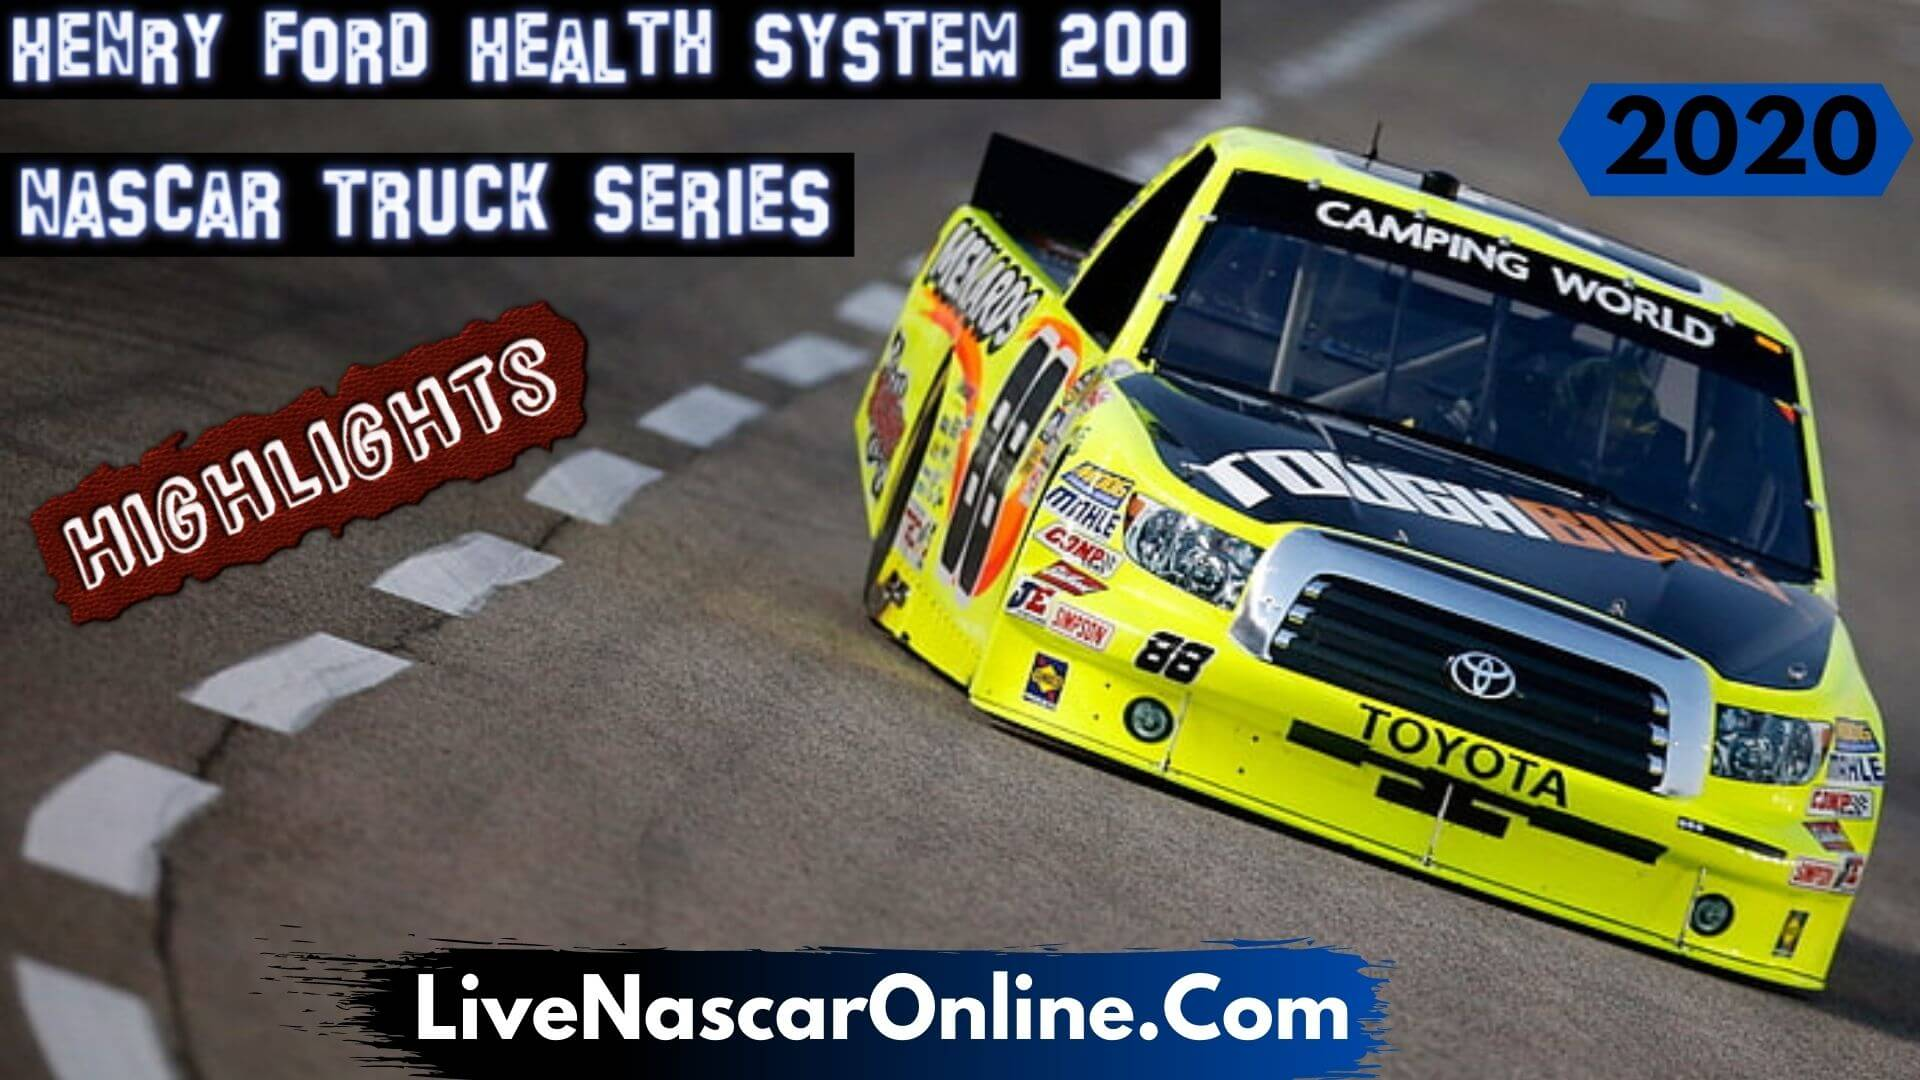 Henry Ford Health System 200 Truck Series Highlights 2020